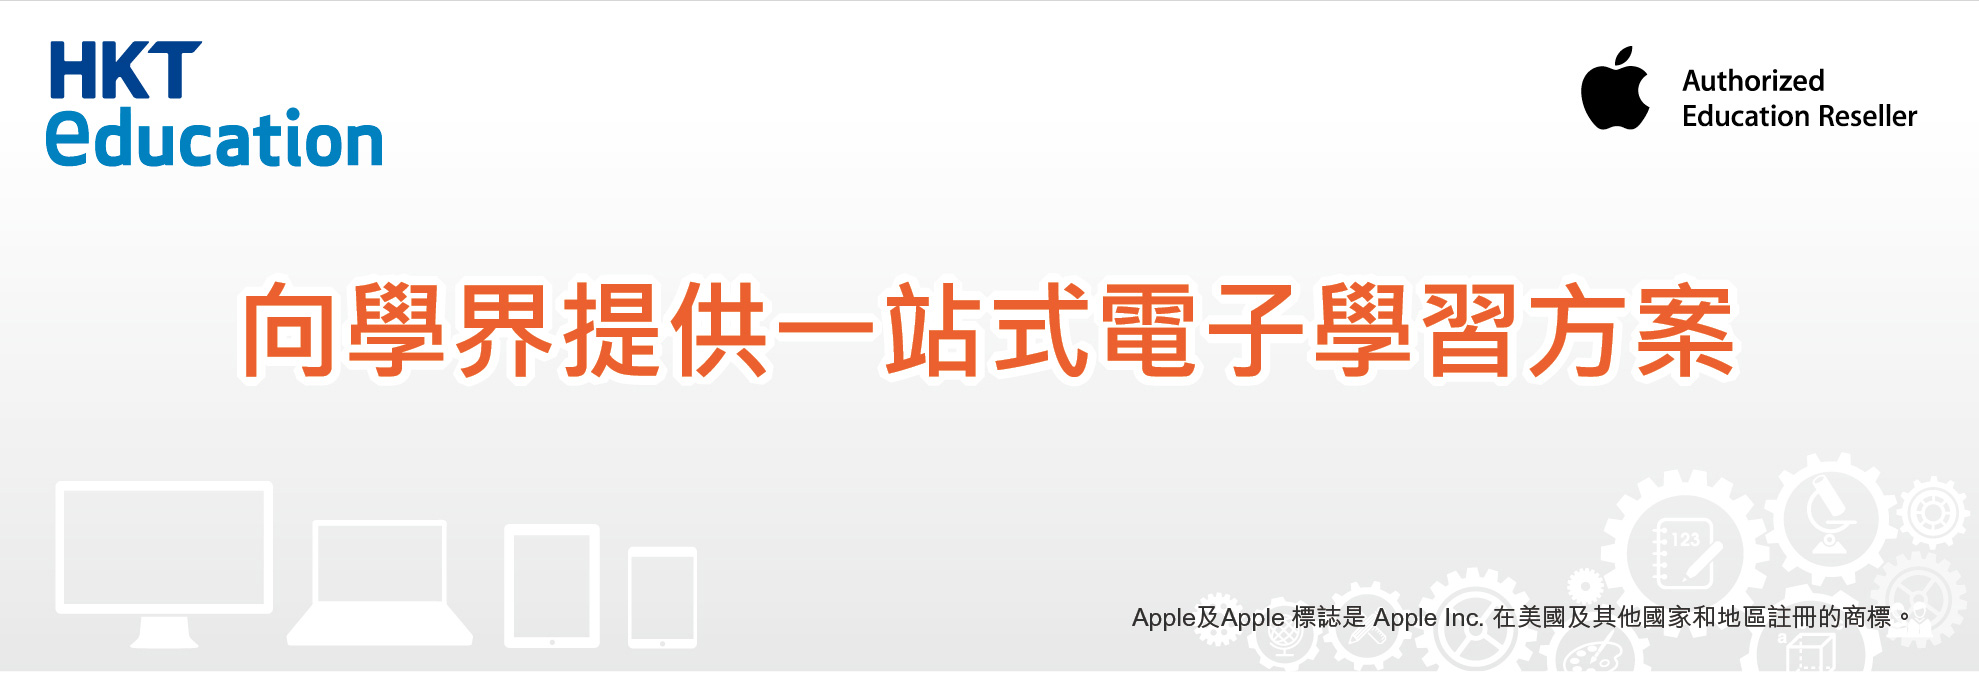 Apple Authorized Education Reseller